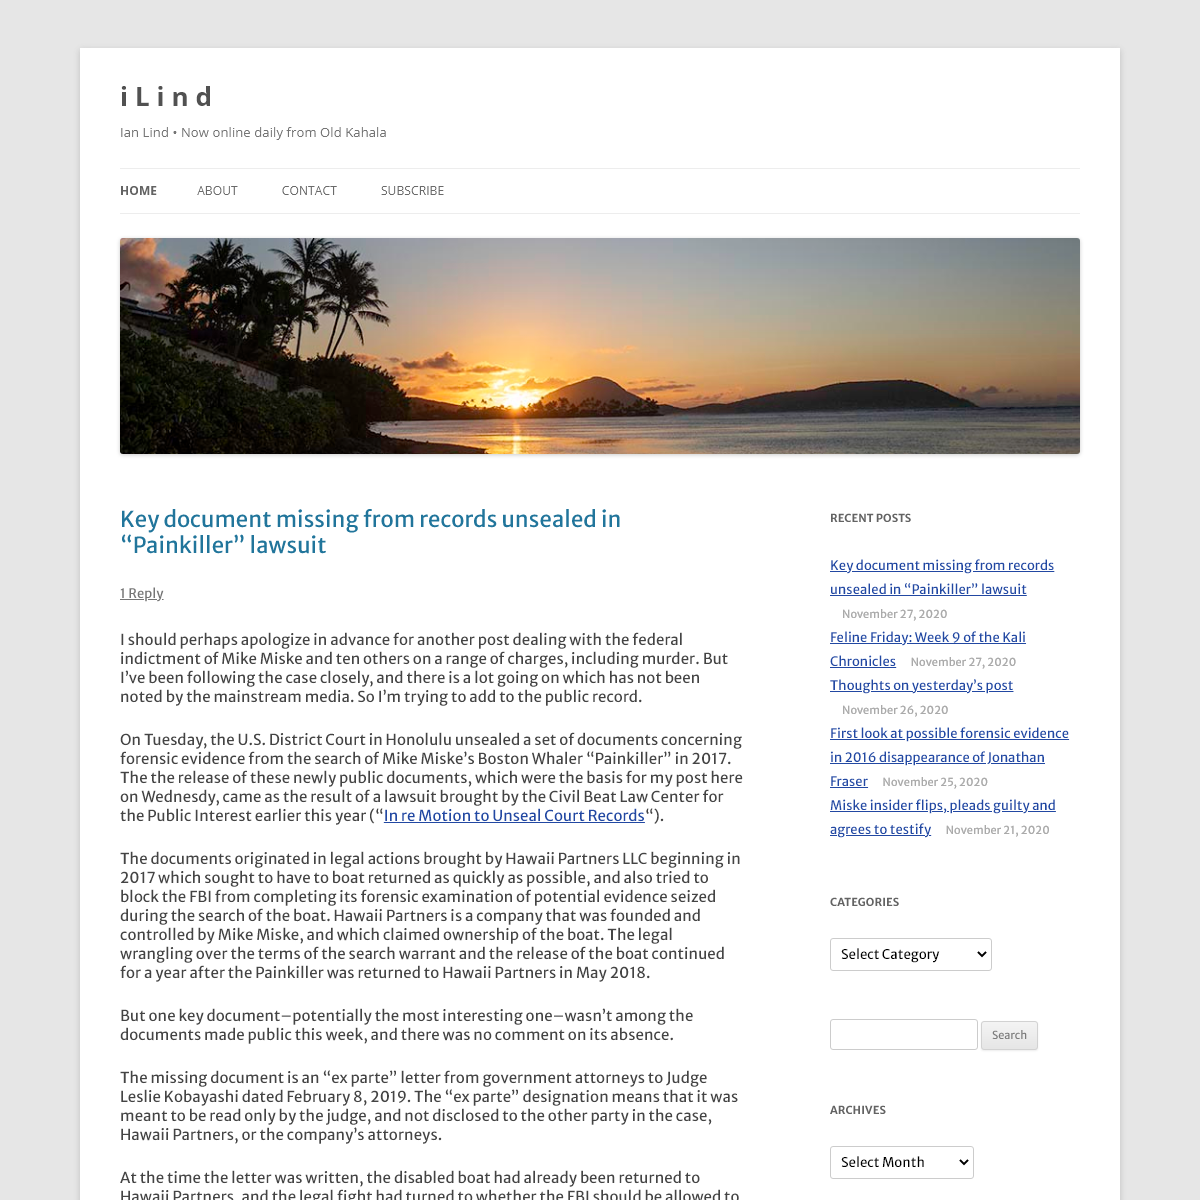 i L i n d - Ian Lind • Now online daily from Old Kahala